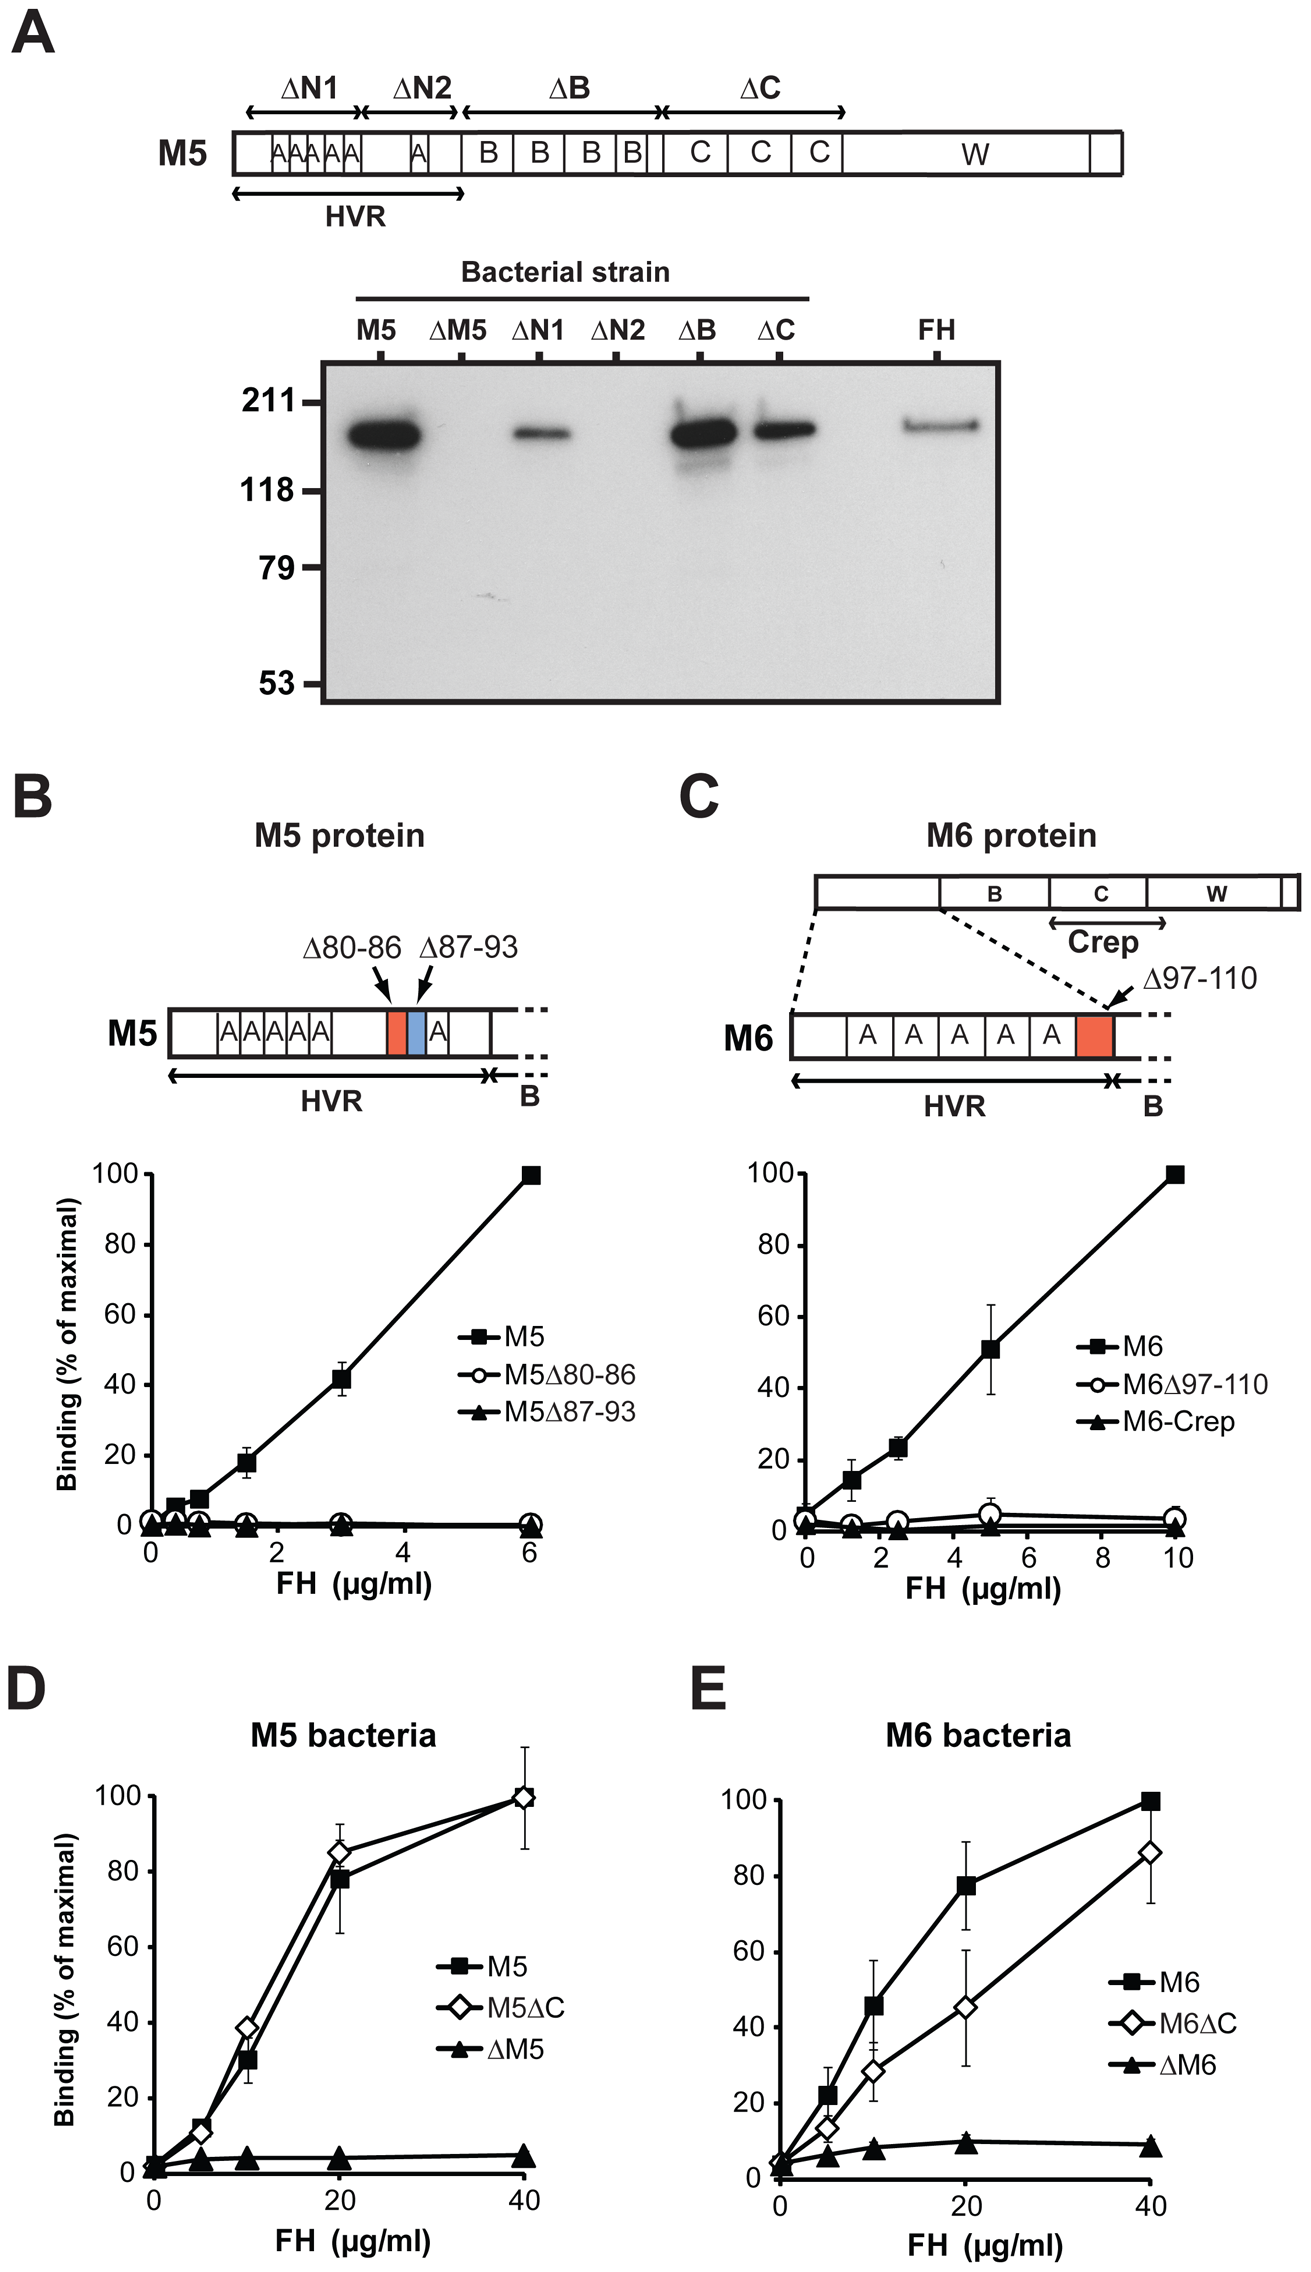 Human FH binds to the HVR of the M5 and M6 proteins.